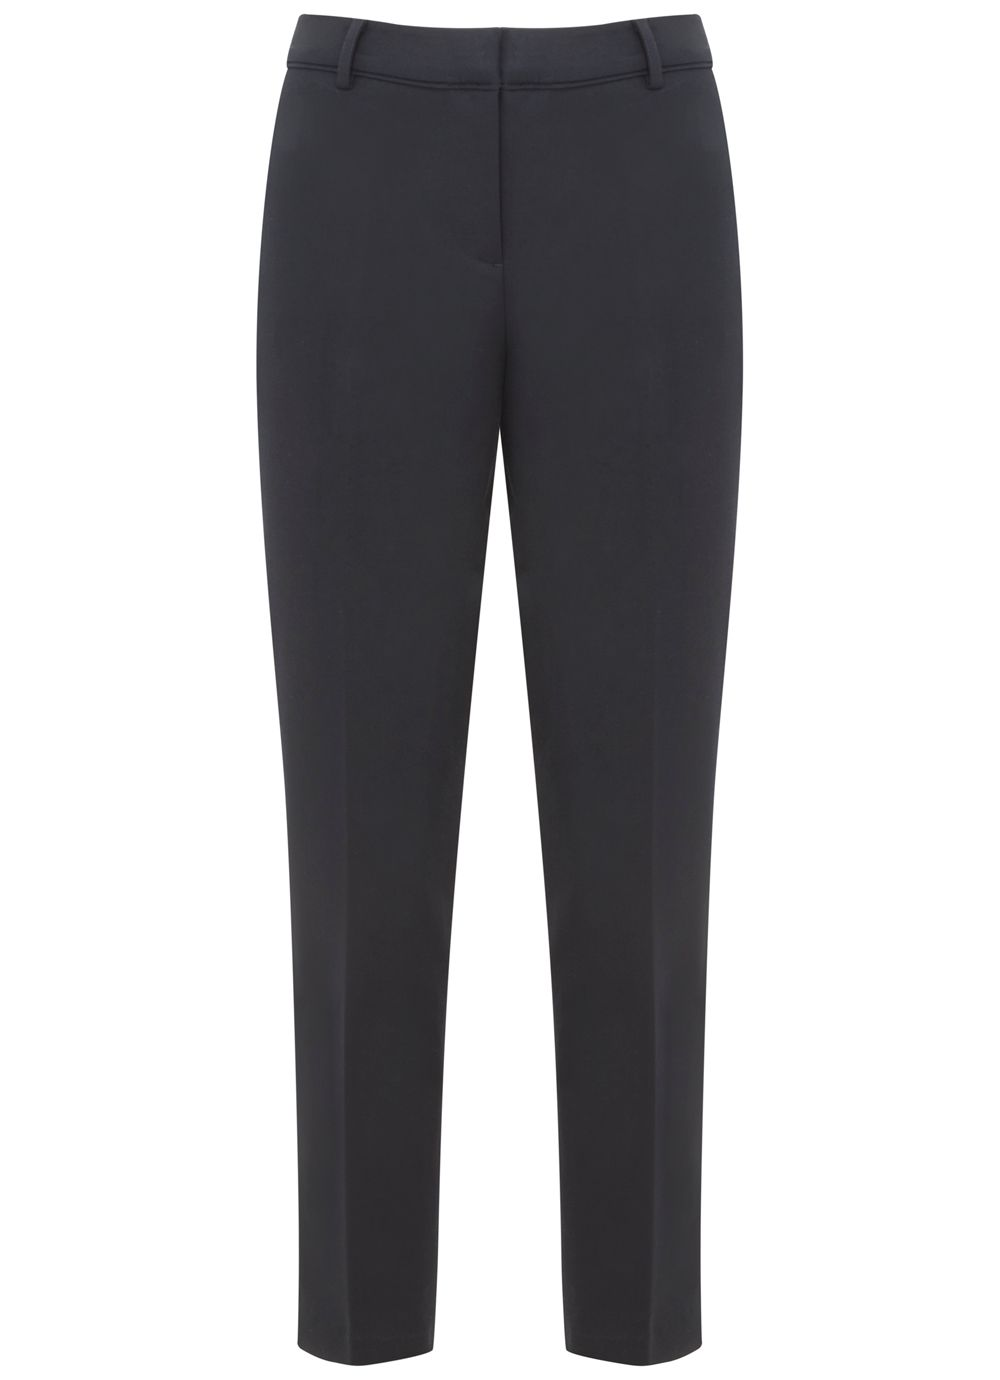 Mint Velvet Navy Stretch Cotton Cropped Trouser, Blue